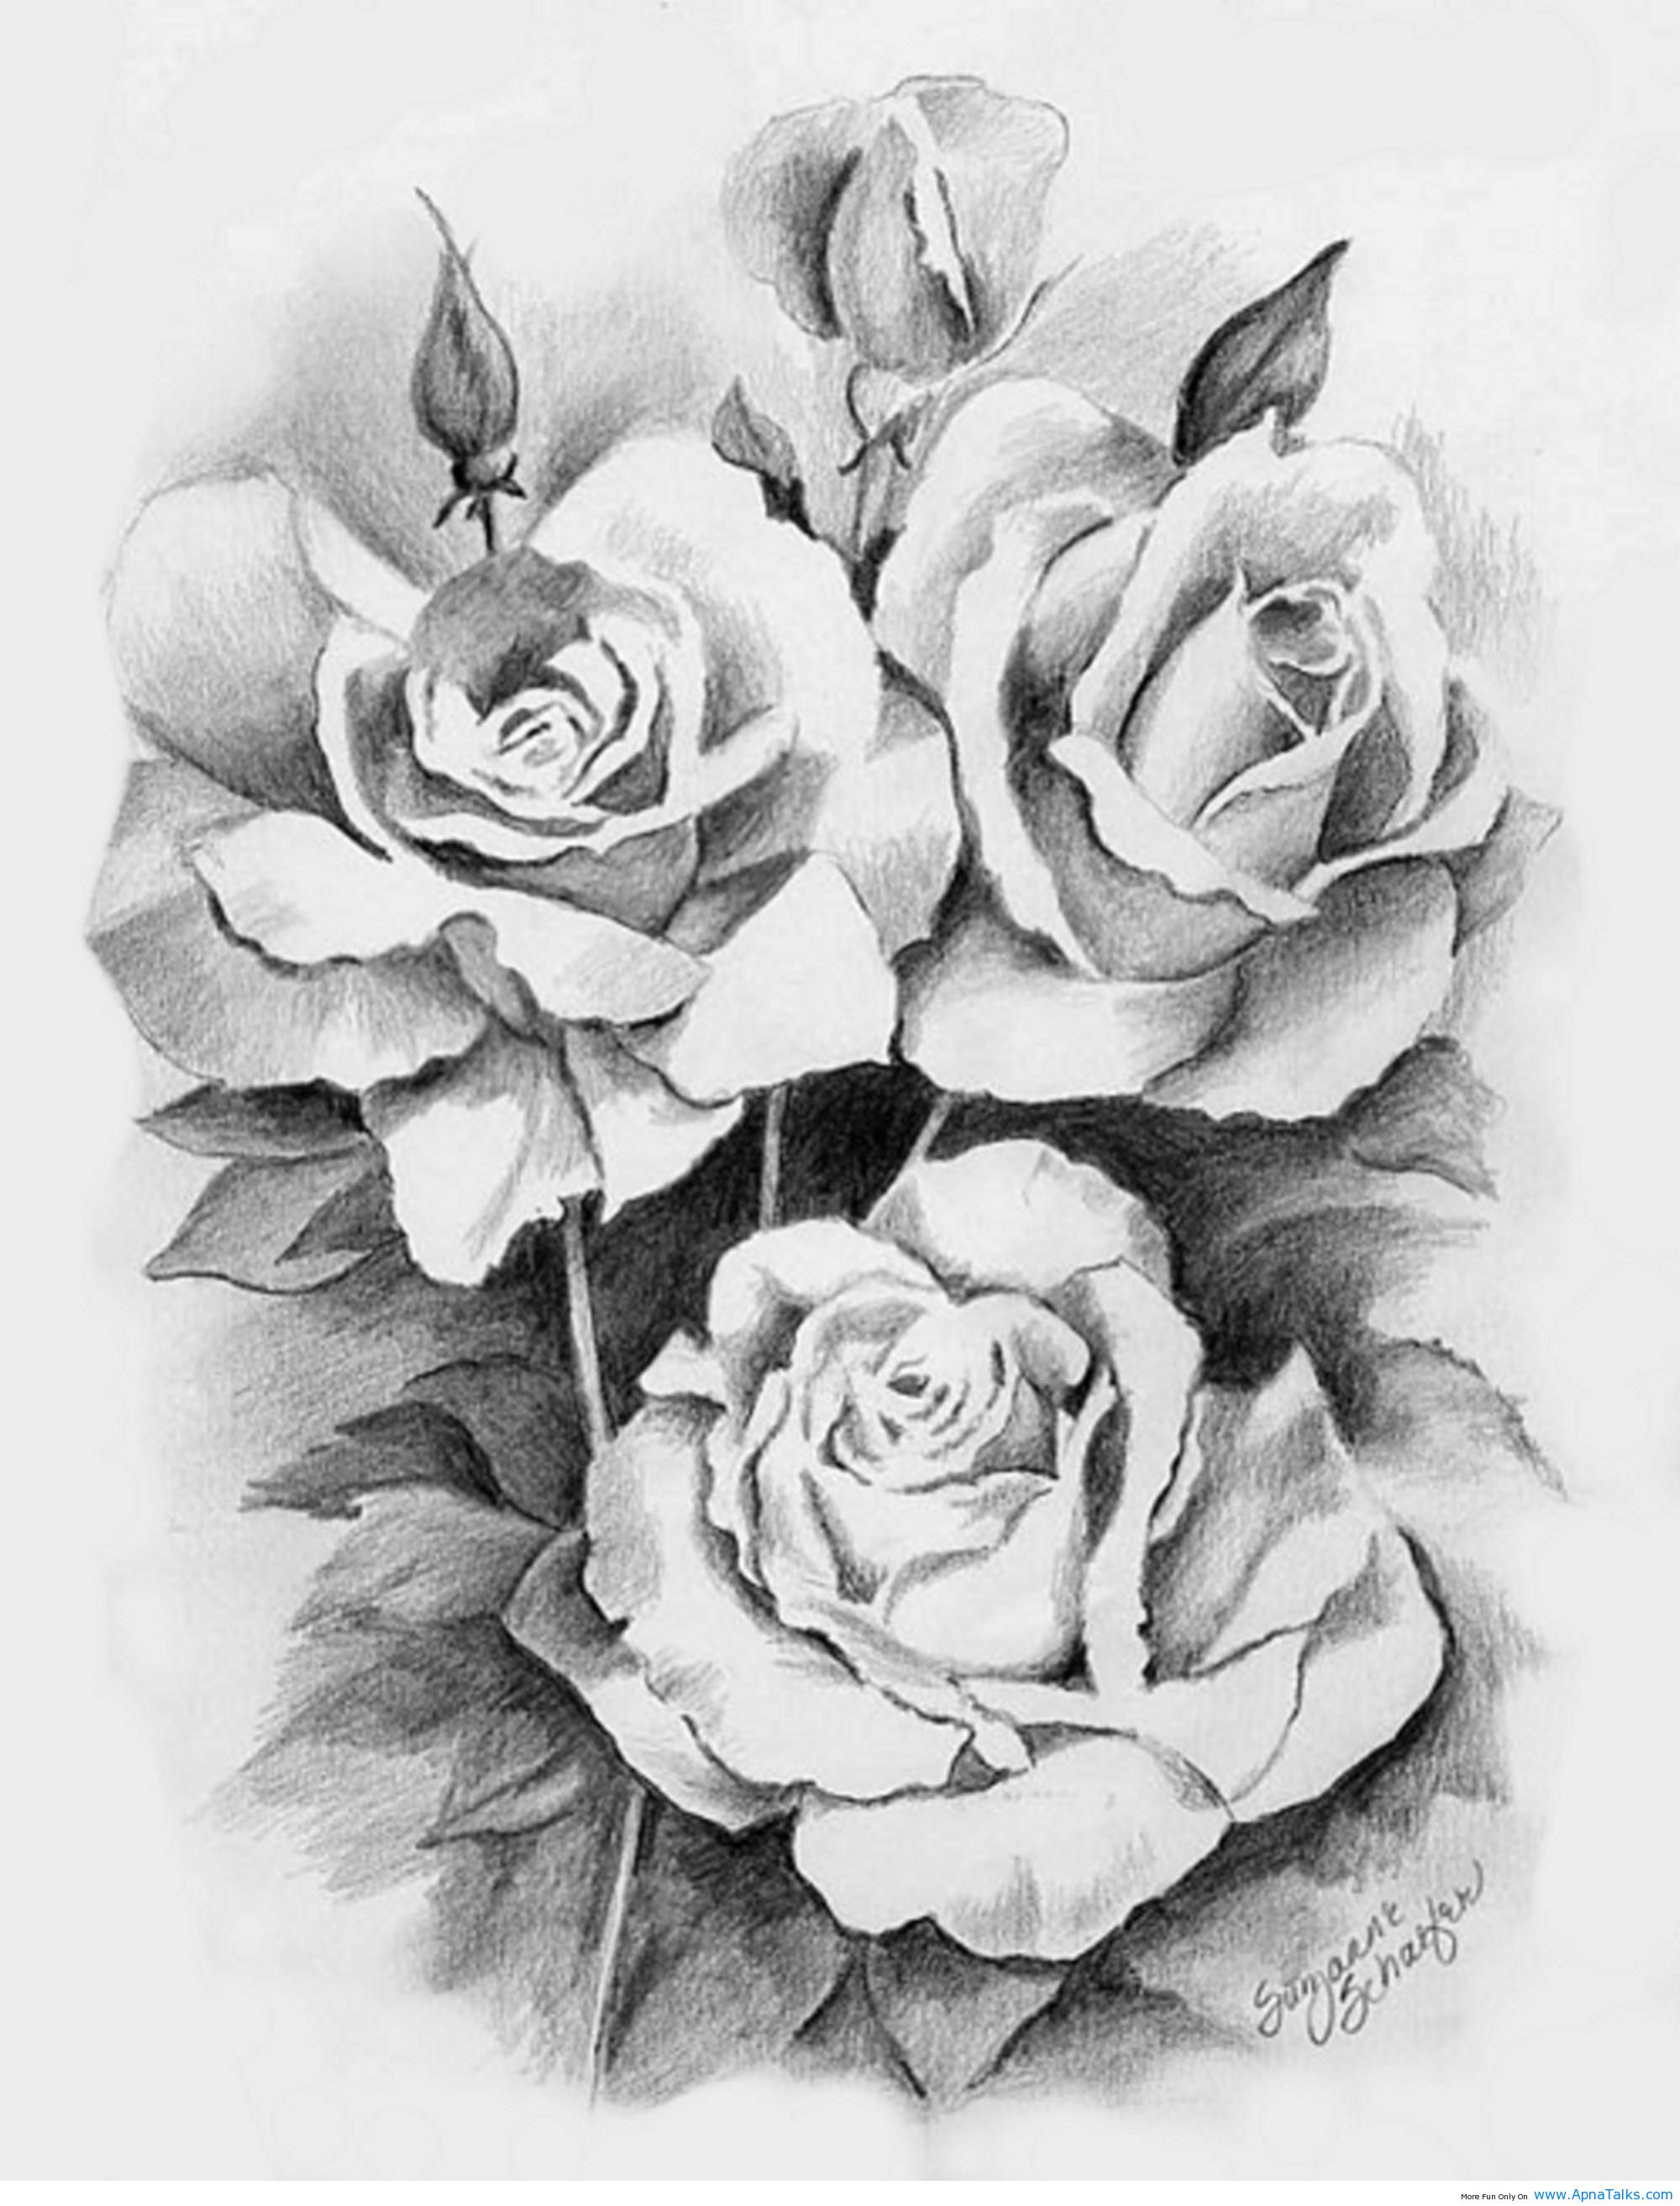 Drawn red rose bunch Creative/Artistic Tattoo beautiful draw roses